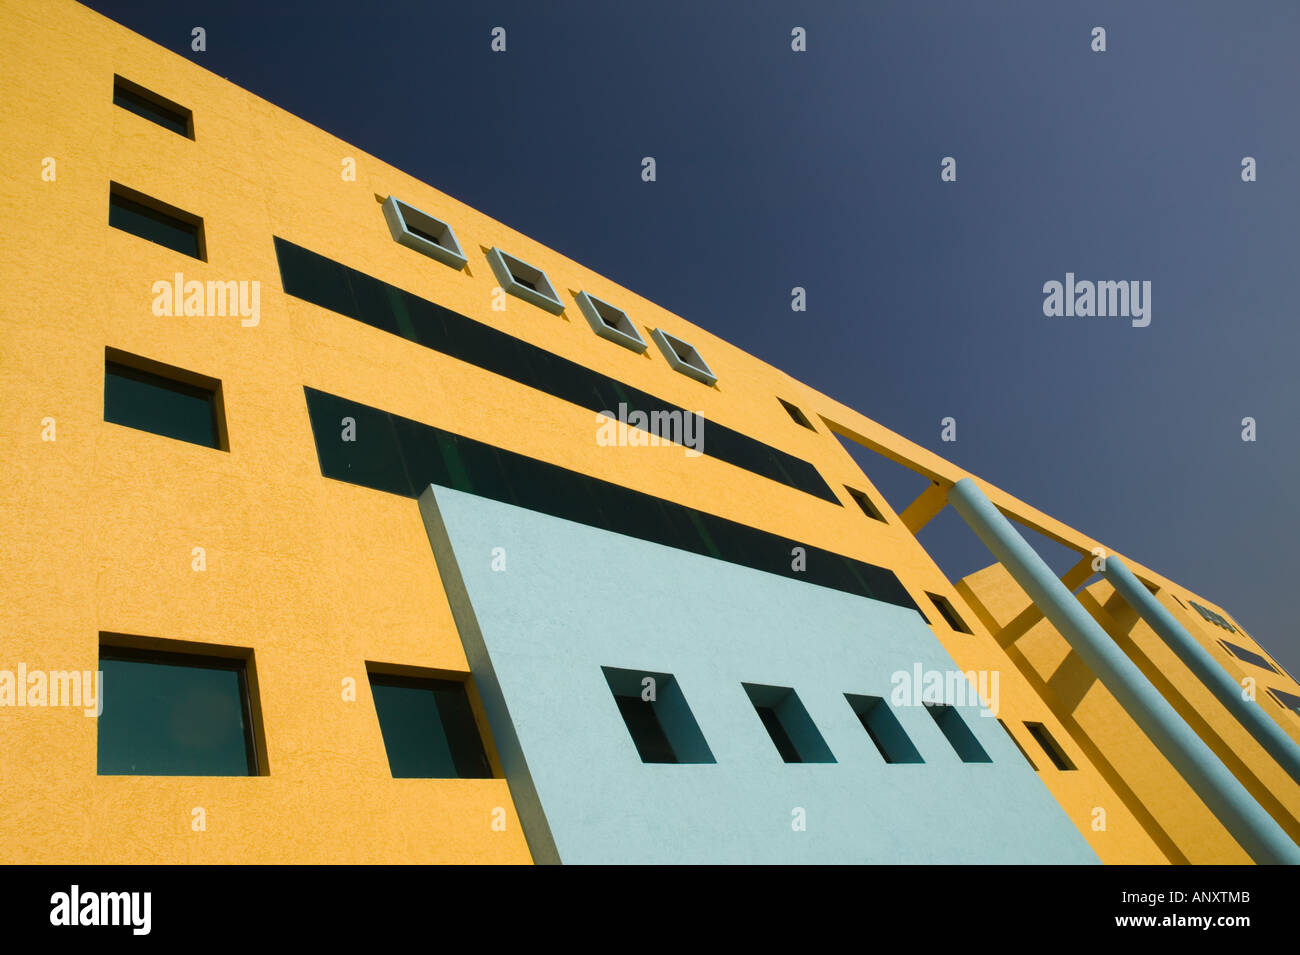 INDIA Andhra Pradesh, Hyderabad: Hitec City, centro importante di Indian Software Call Center industria. Kanbay Foto Stock